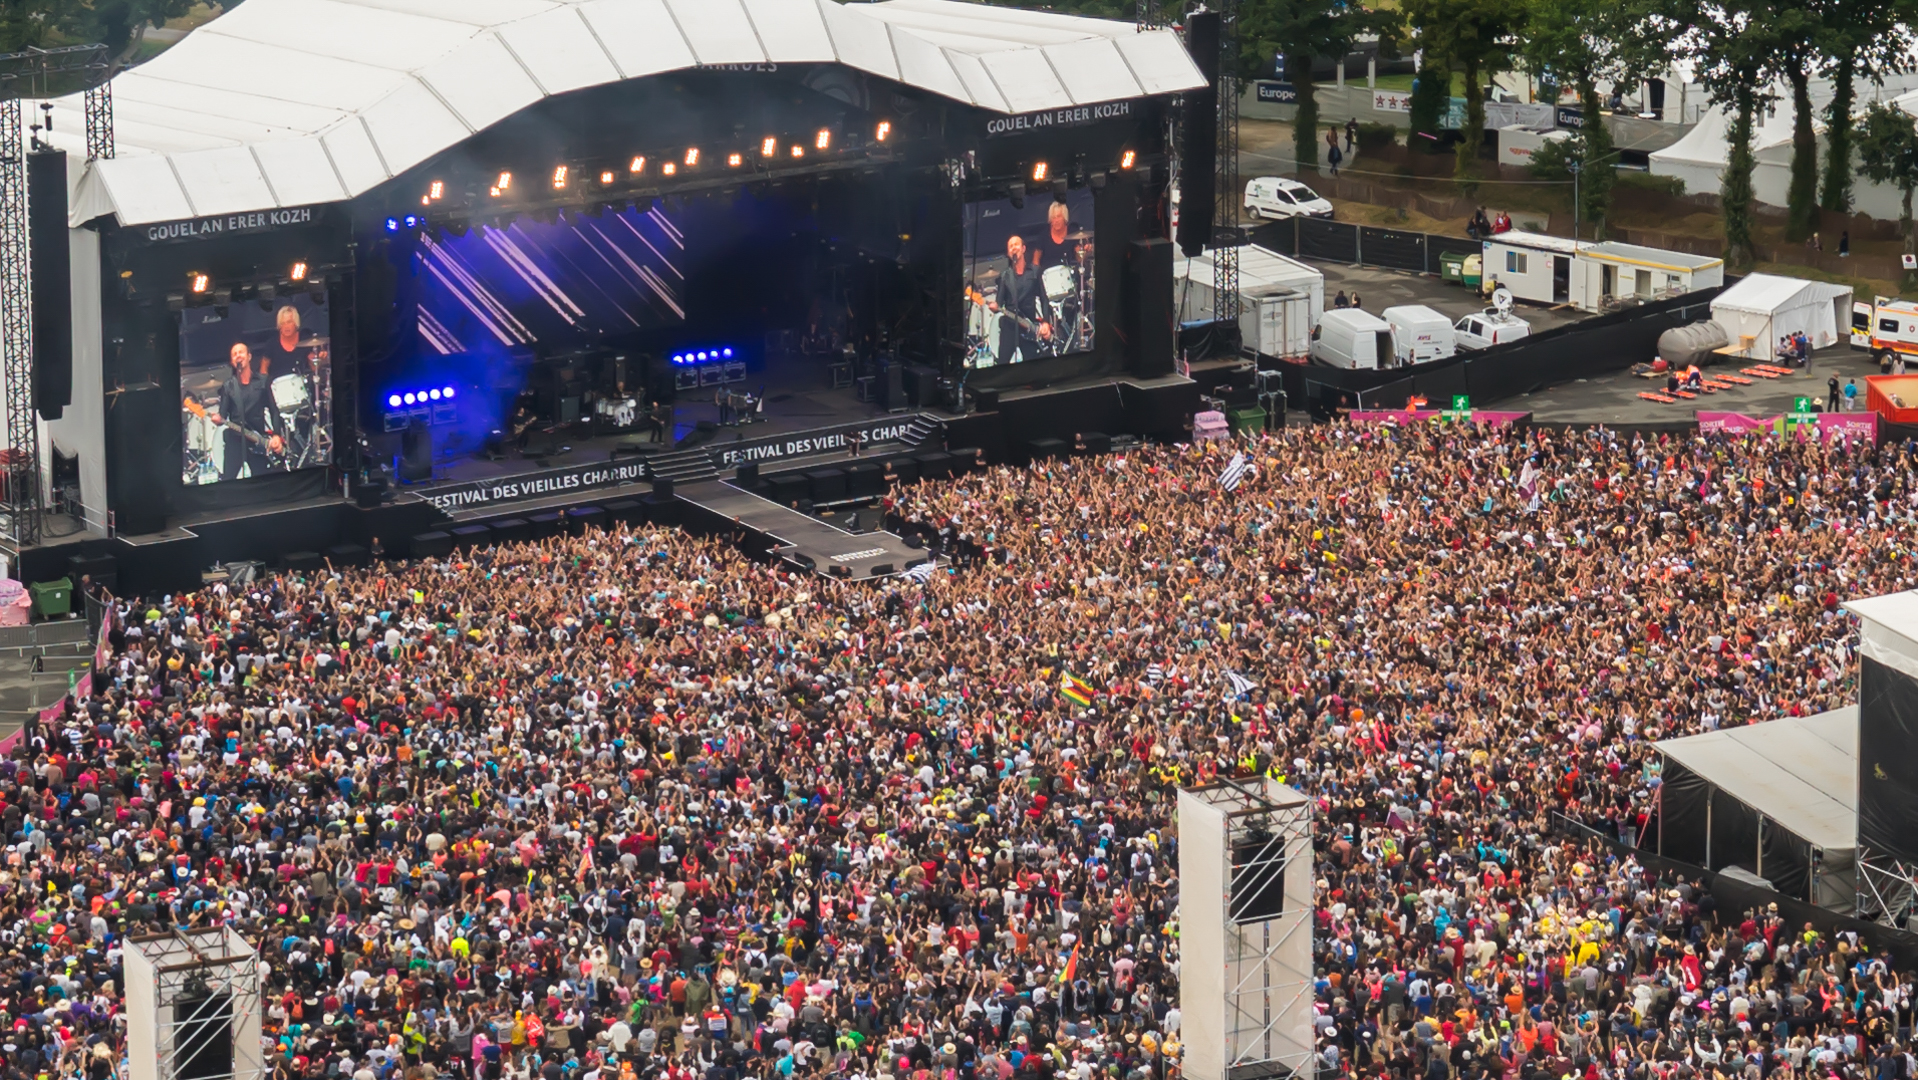 ups drone with Vieilles Charrues 2016 on Vieilles Charrues 2016 besides 23 Pilas Y Baterias as well  as well Happymodel Snapper7 Racing Drone BNF Three Battery 393451 besides Nokia 8 64gb Polished Copper.